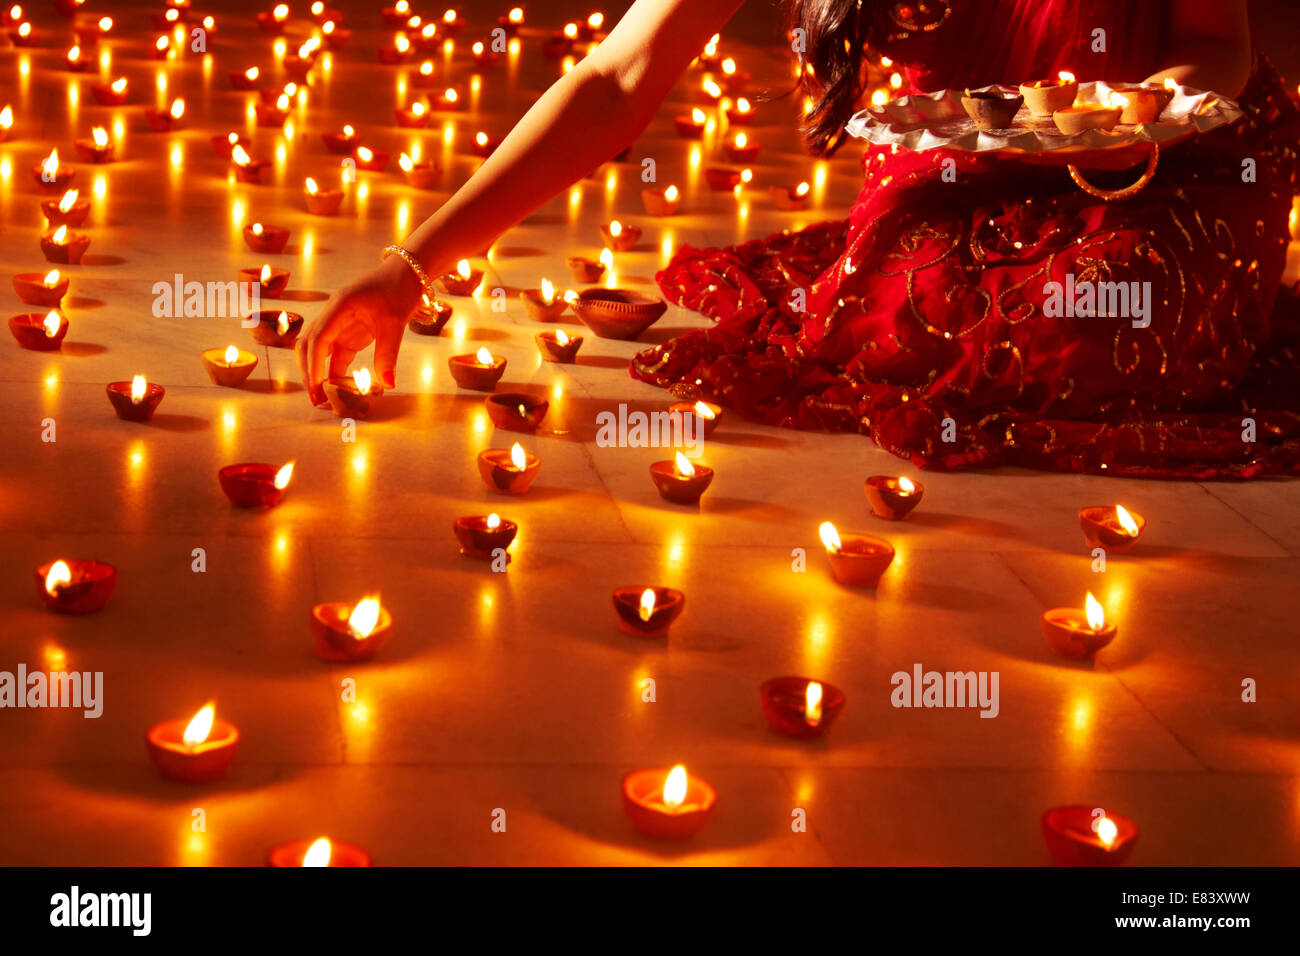 Indian Festival Decoration Indian Festival Diwali Decoration Stock Photo Royalty Free Image